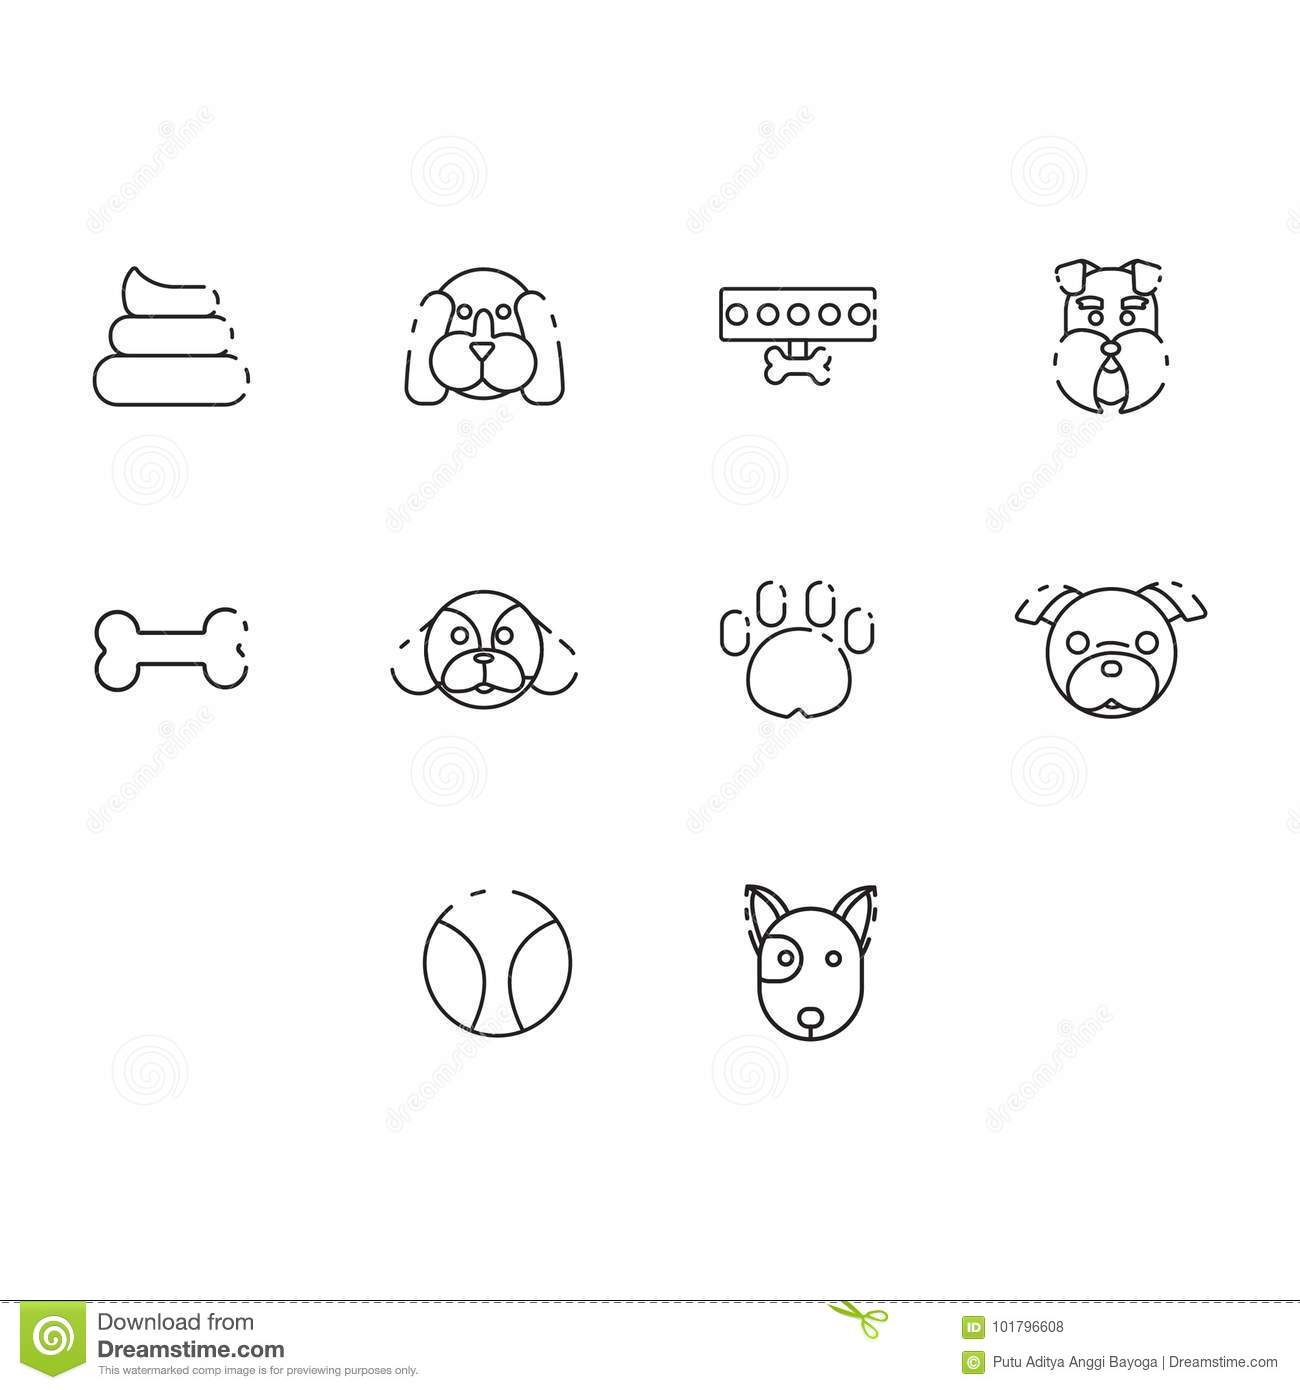 Thin line dog icon set stock vector. Illustration of poop